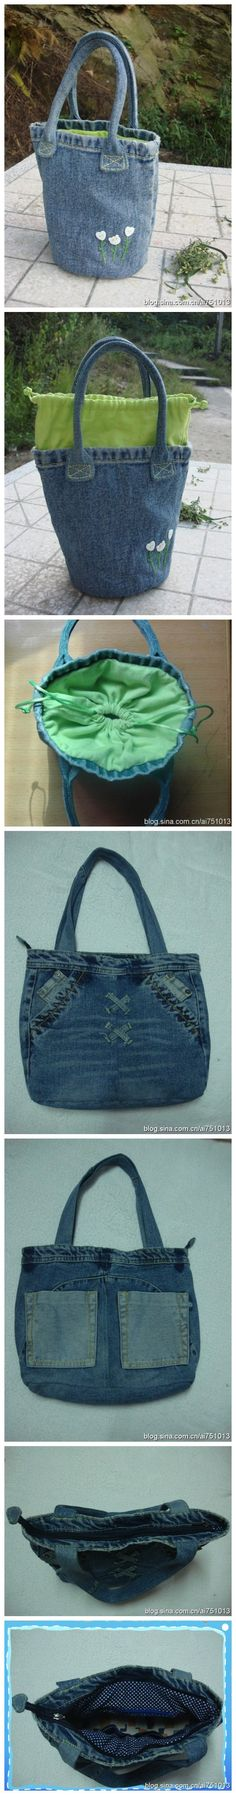 bags from repurposed